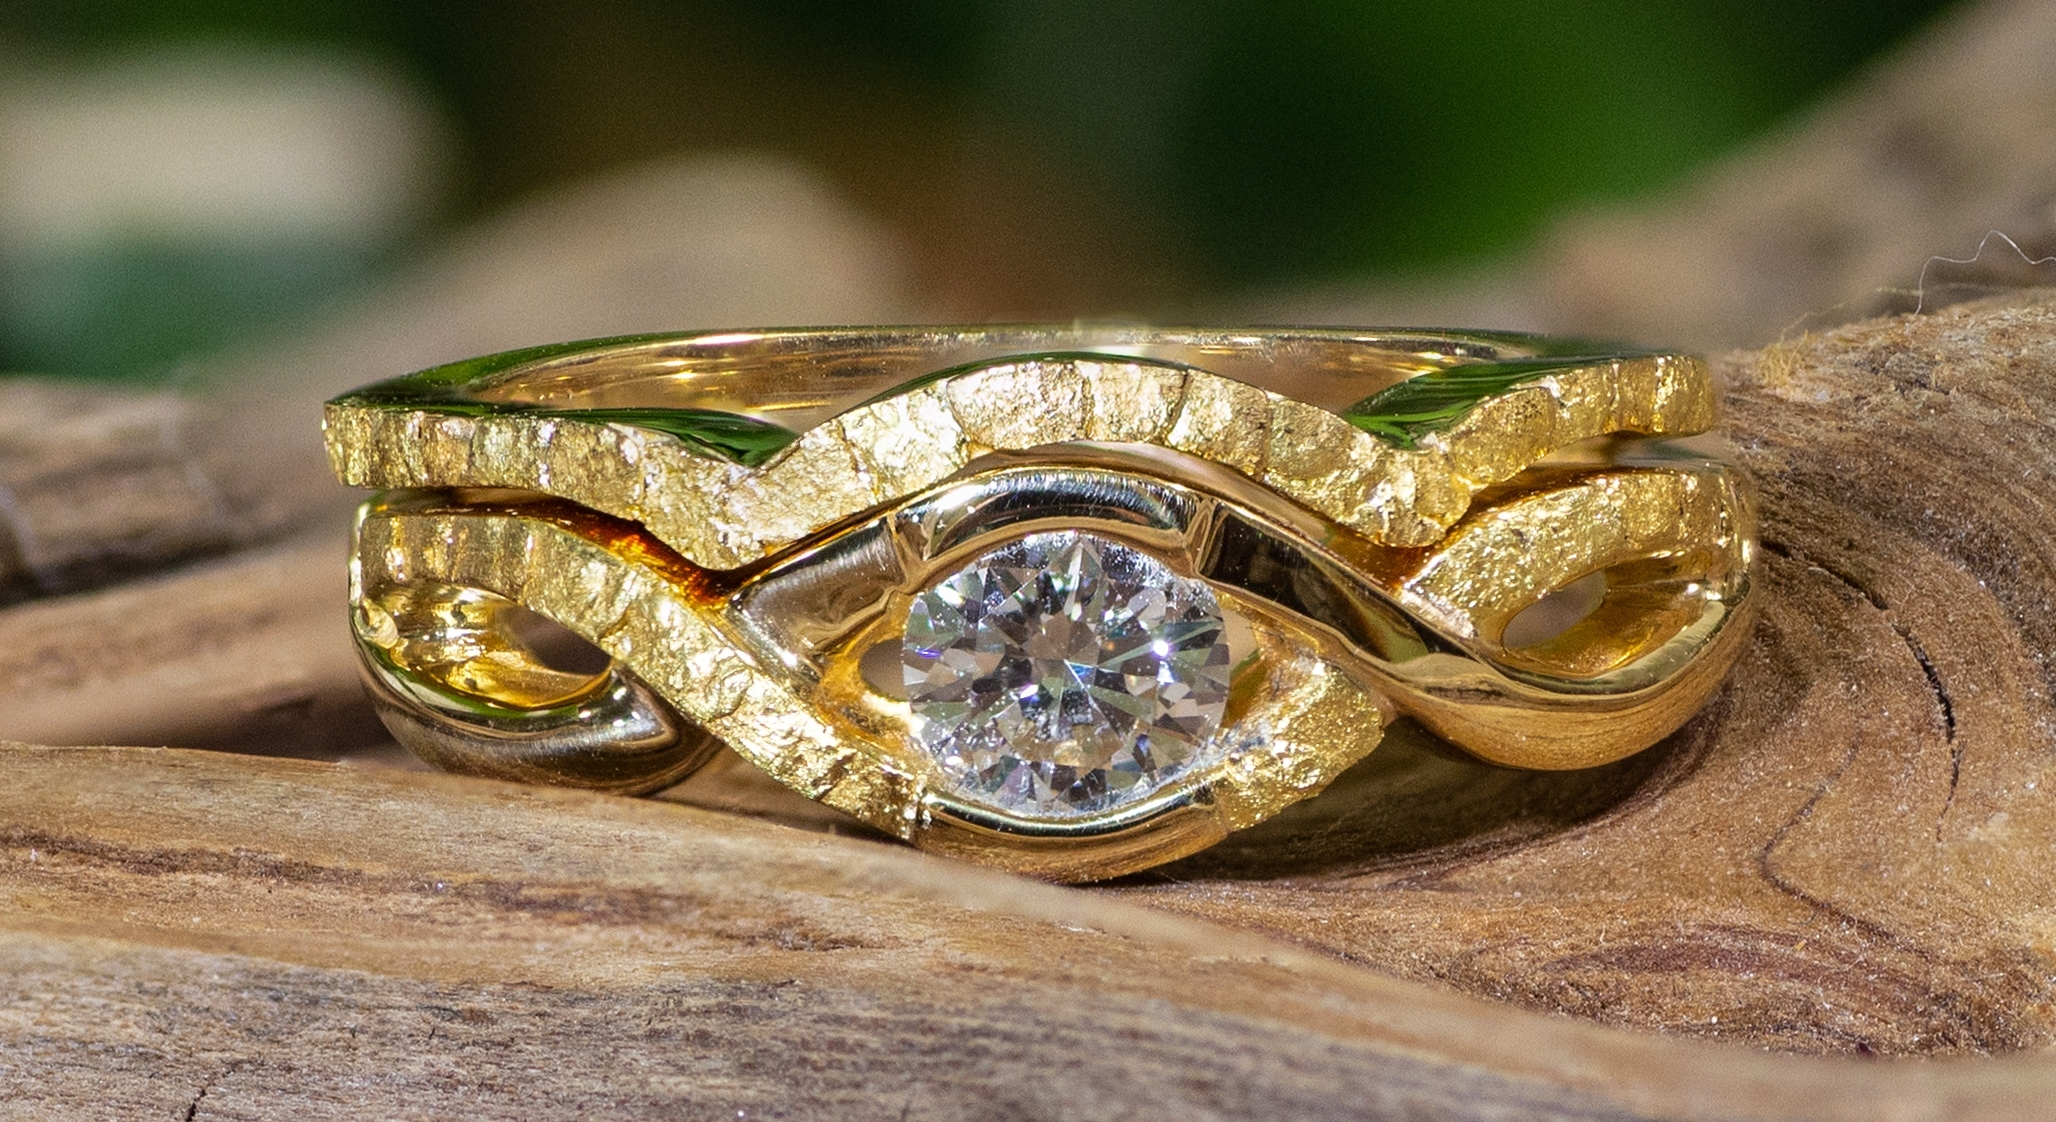 Alaskan Gold Nuggets and Diamonds in 14kt Yellow Gold wedding ring.